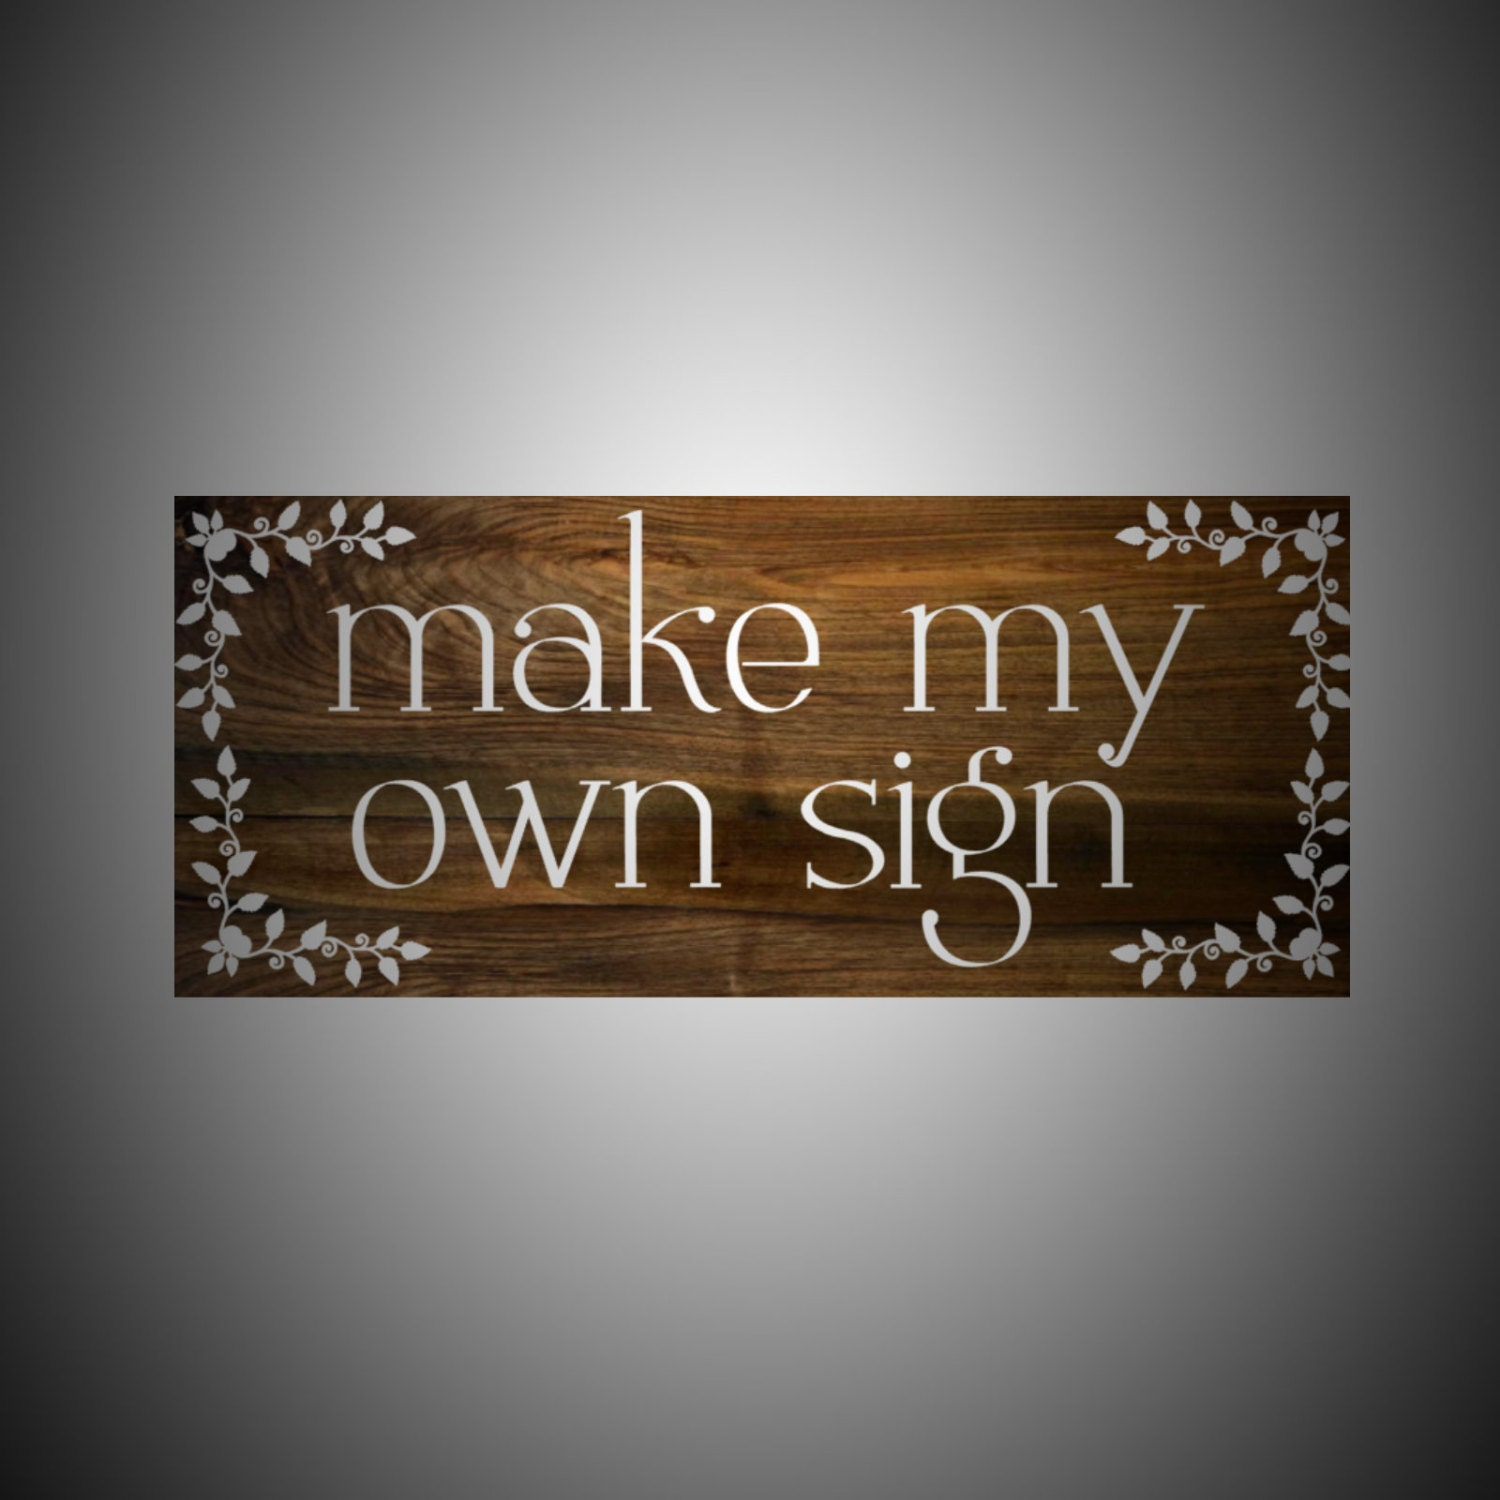 personalize your sign in - photo #39